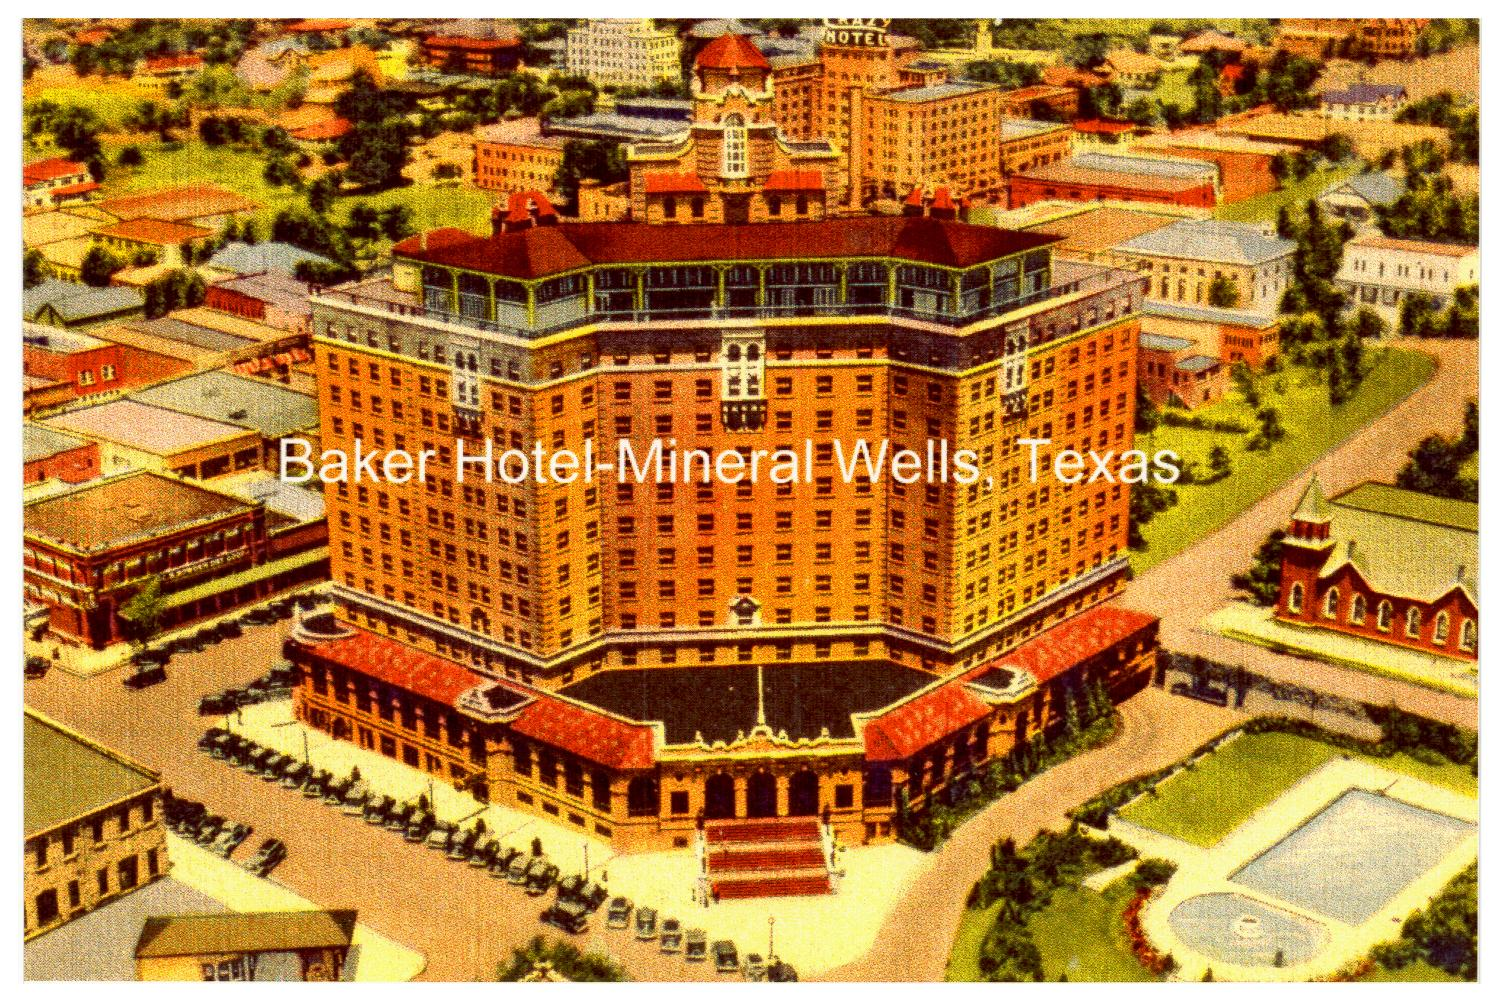 Baker Hotel Mineral Wells Texas The Portal To Texas History